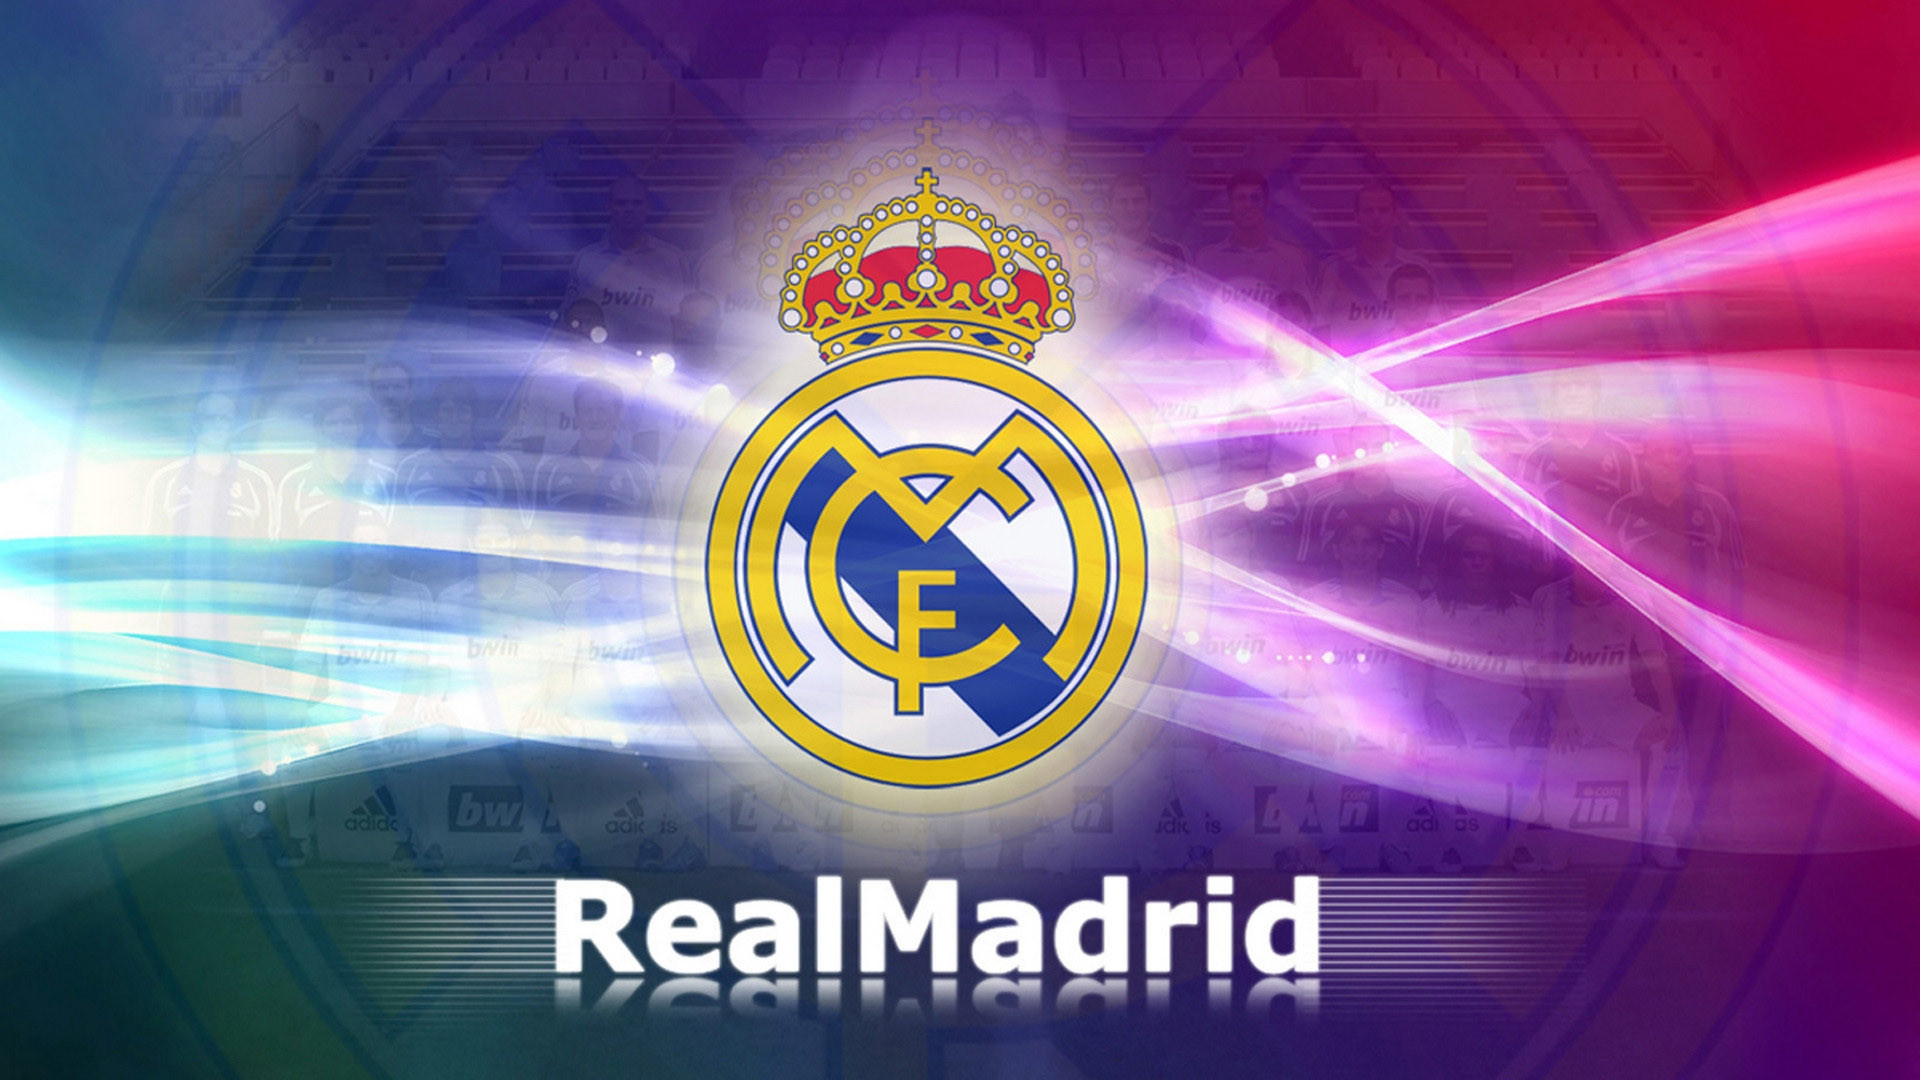 1920x1080 Real Madrid Football Club Wallpaper Football Wallpaper HD 1920×1200 RealMadrid  Wallpaper (48 Wallpapers) | Adorable Wallpapers | Real Madrid | Pinterest  ...